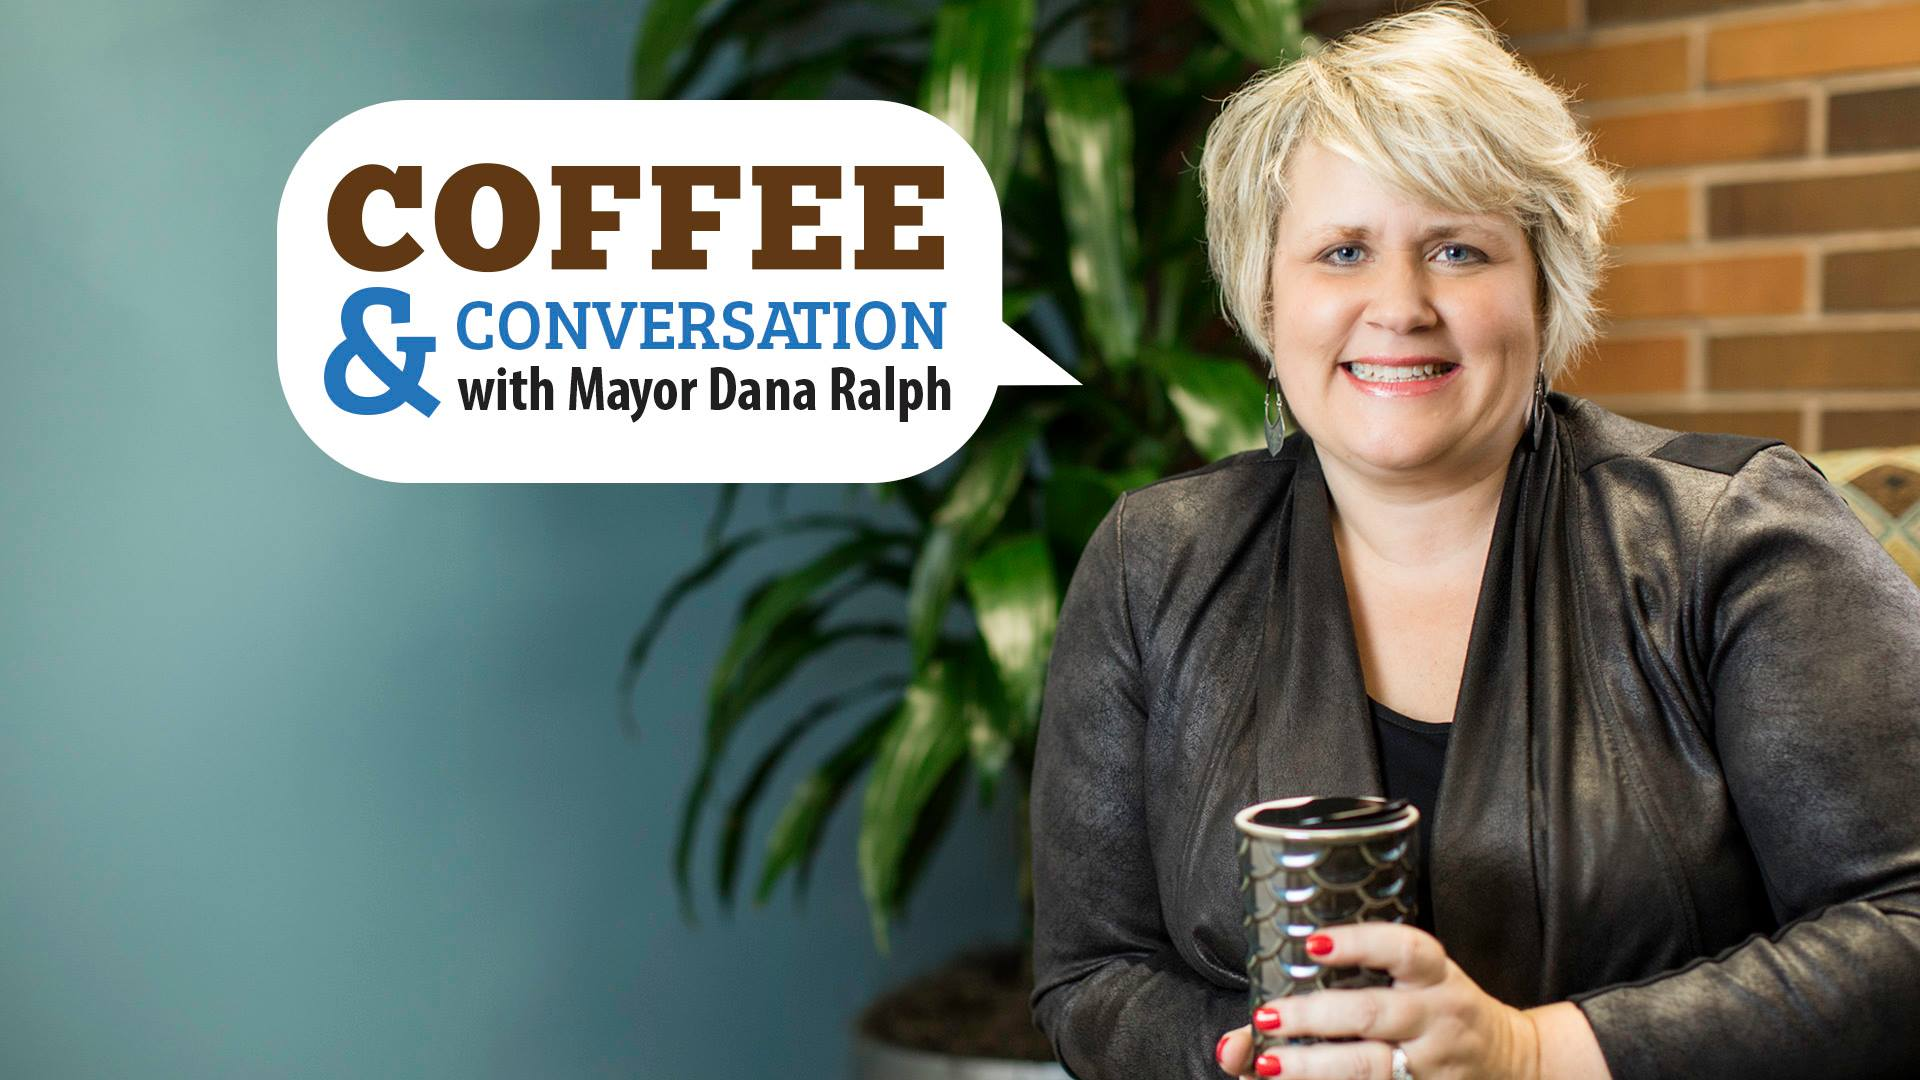 Join us for Coffee & Conversation with Mayor Dana Ralph on February 25, 2019.